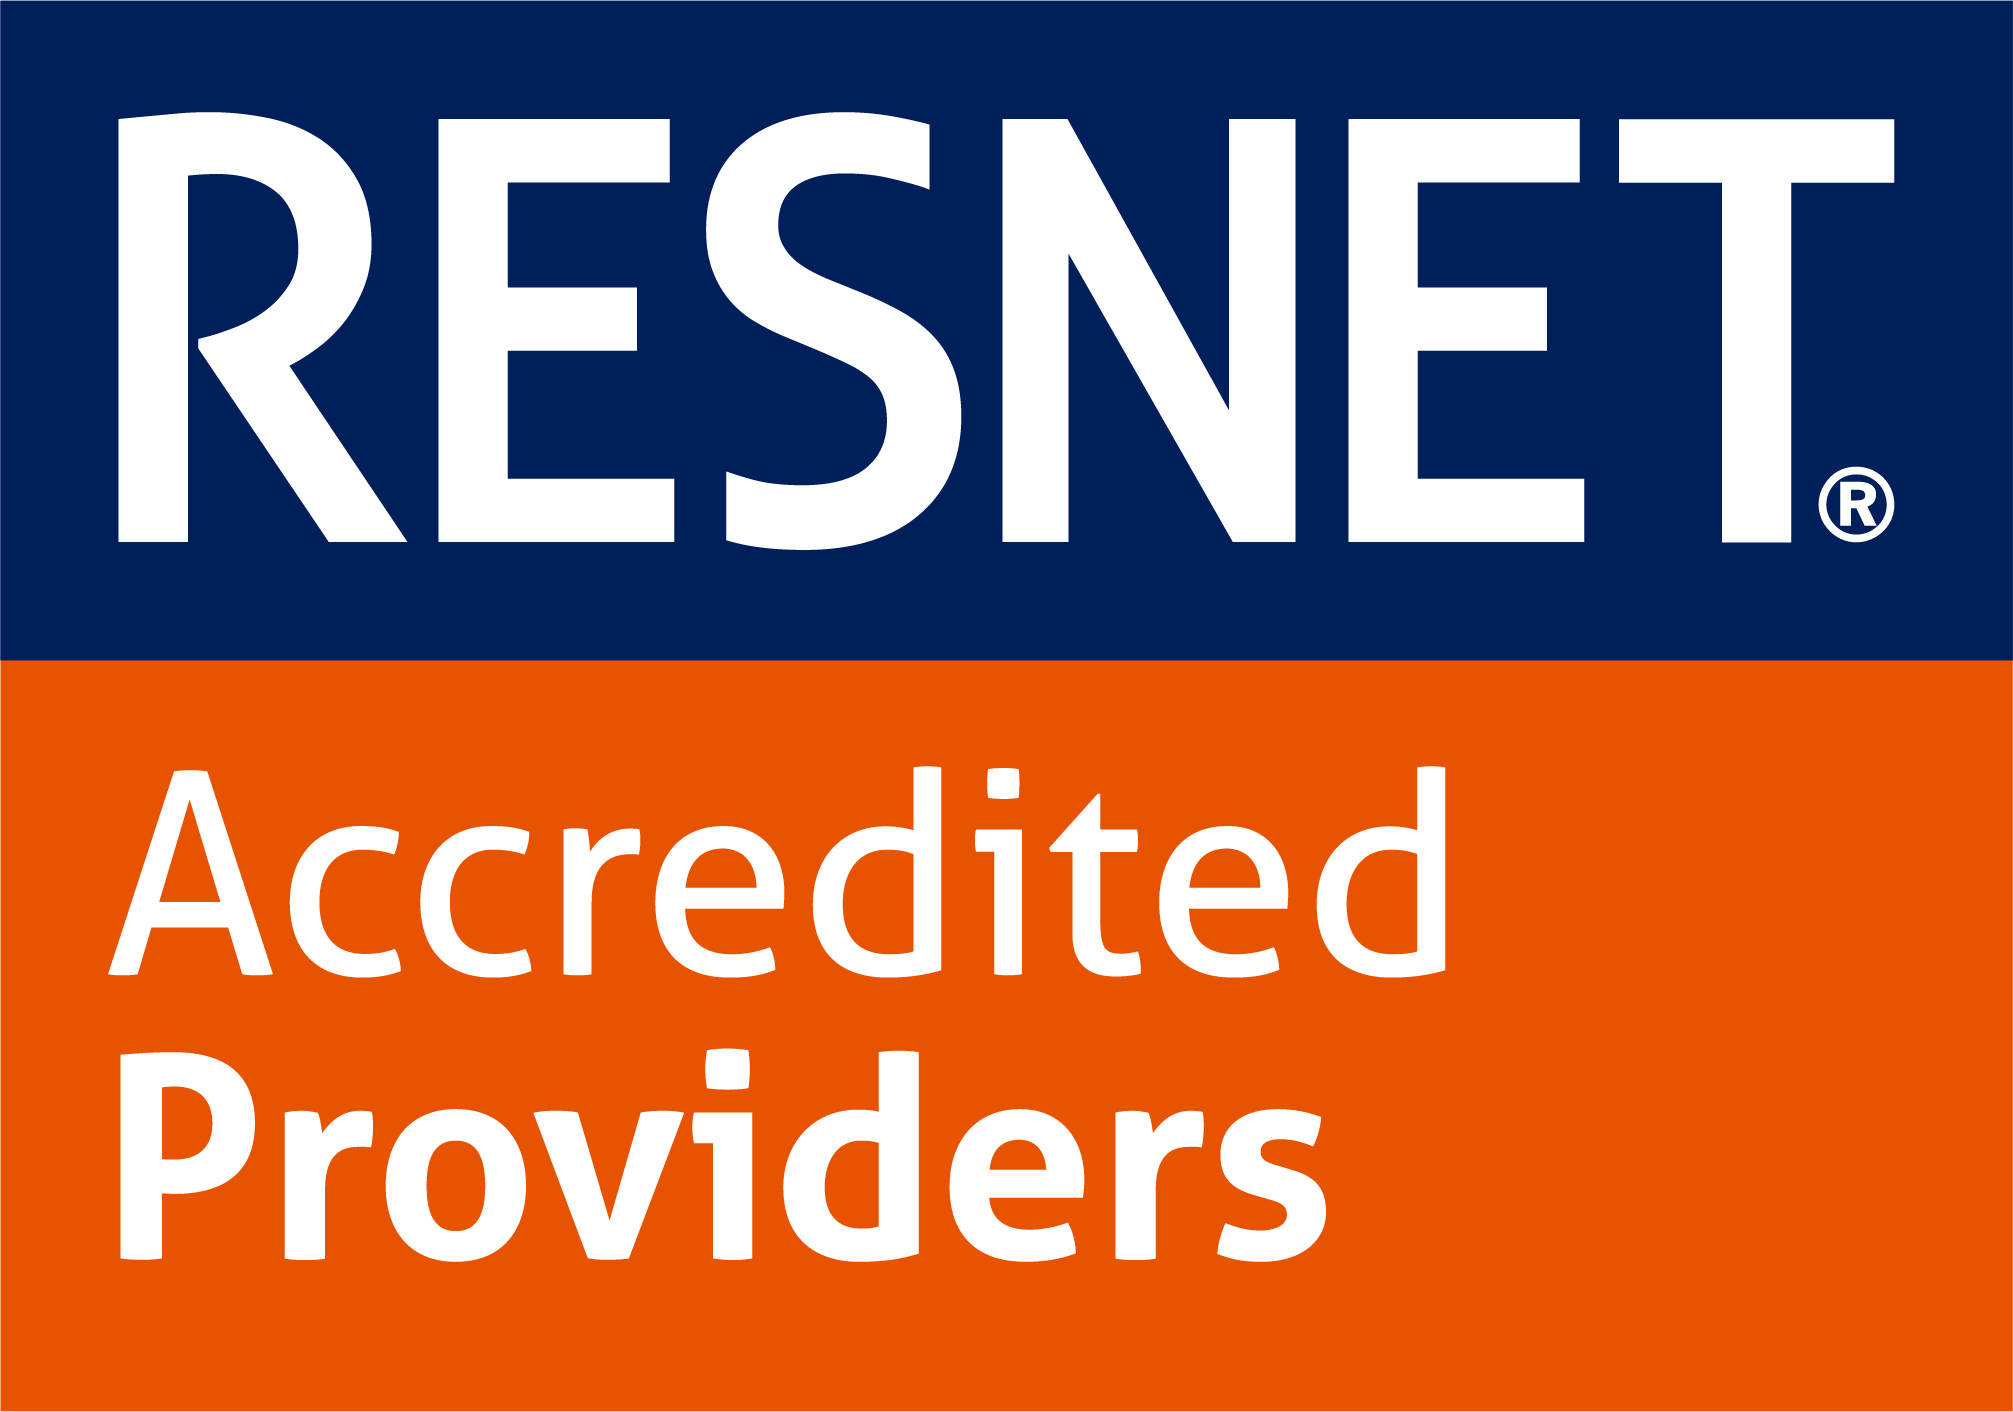 RESNET Accredited Providers Vertical Logo RGB Web Use